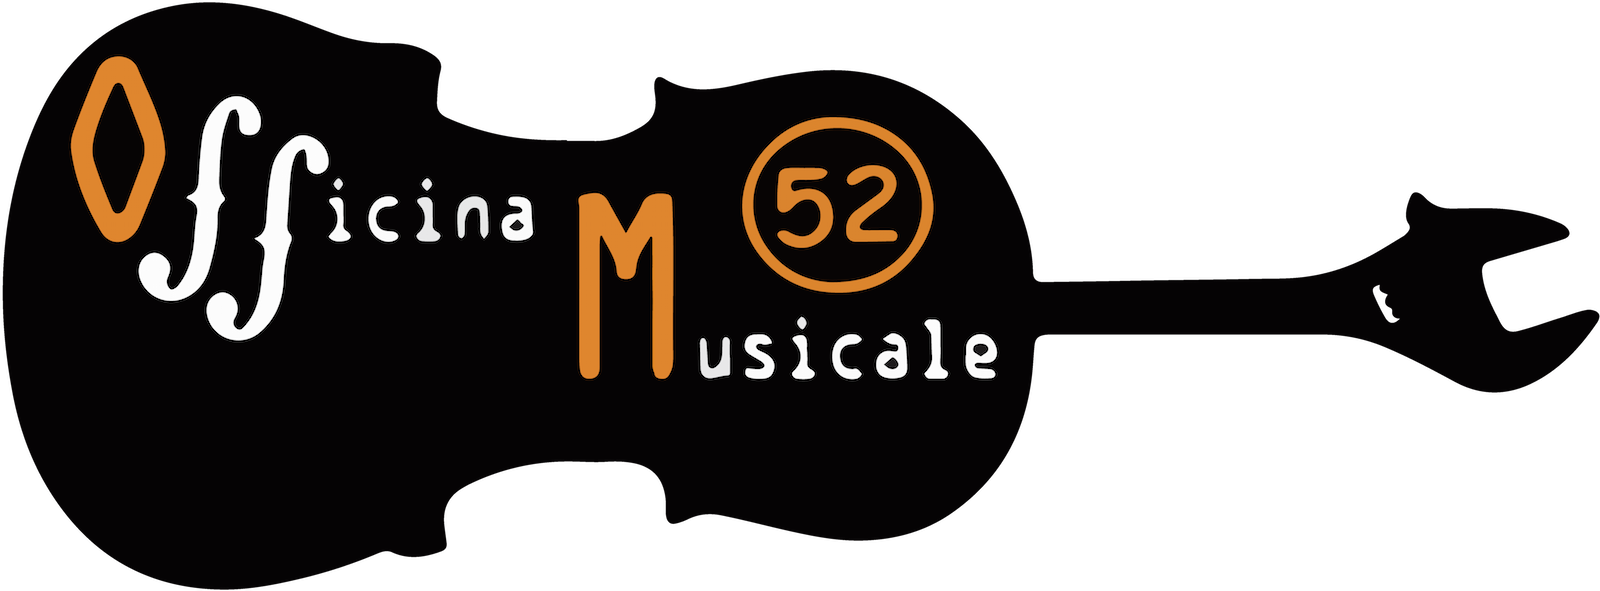 officina musicale 52 home